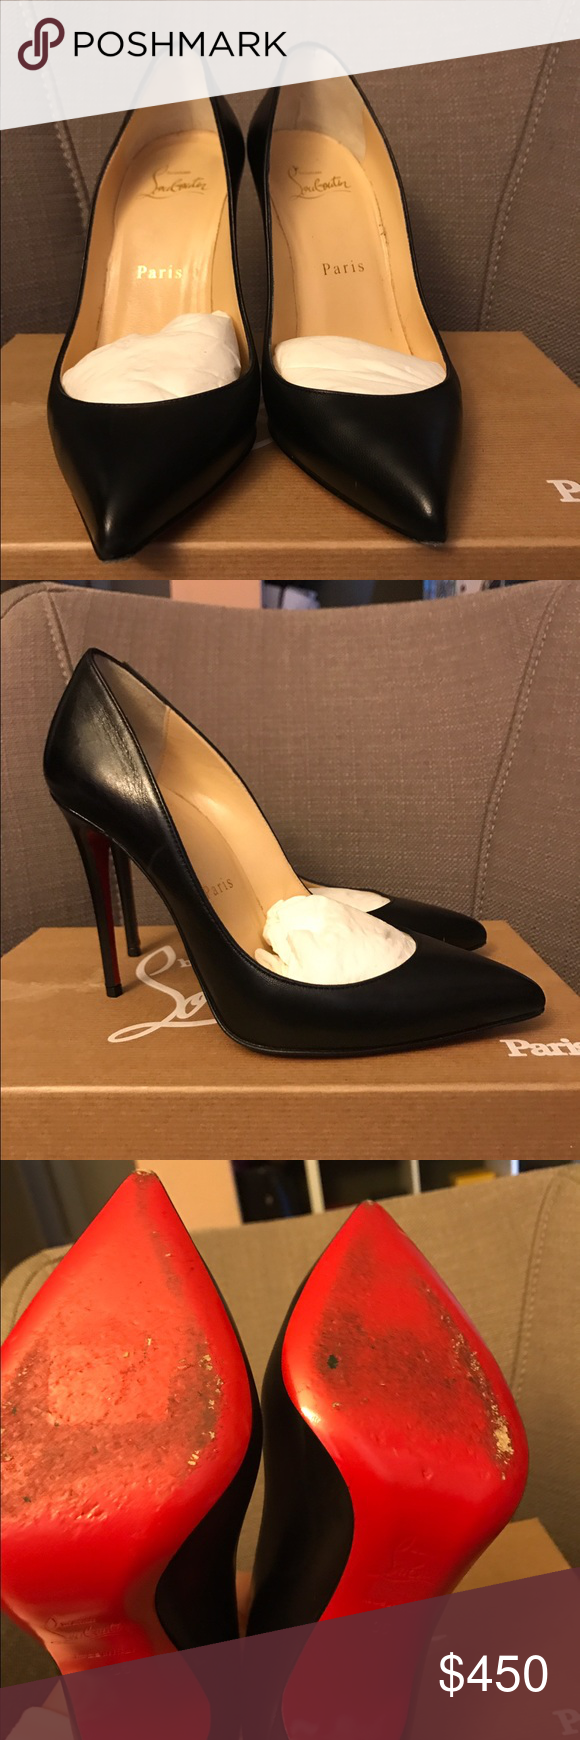 christian louboutin shoes at holt renfrew